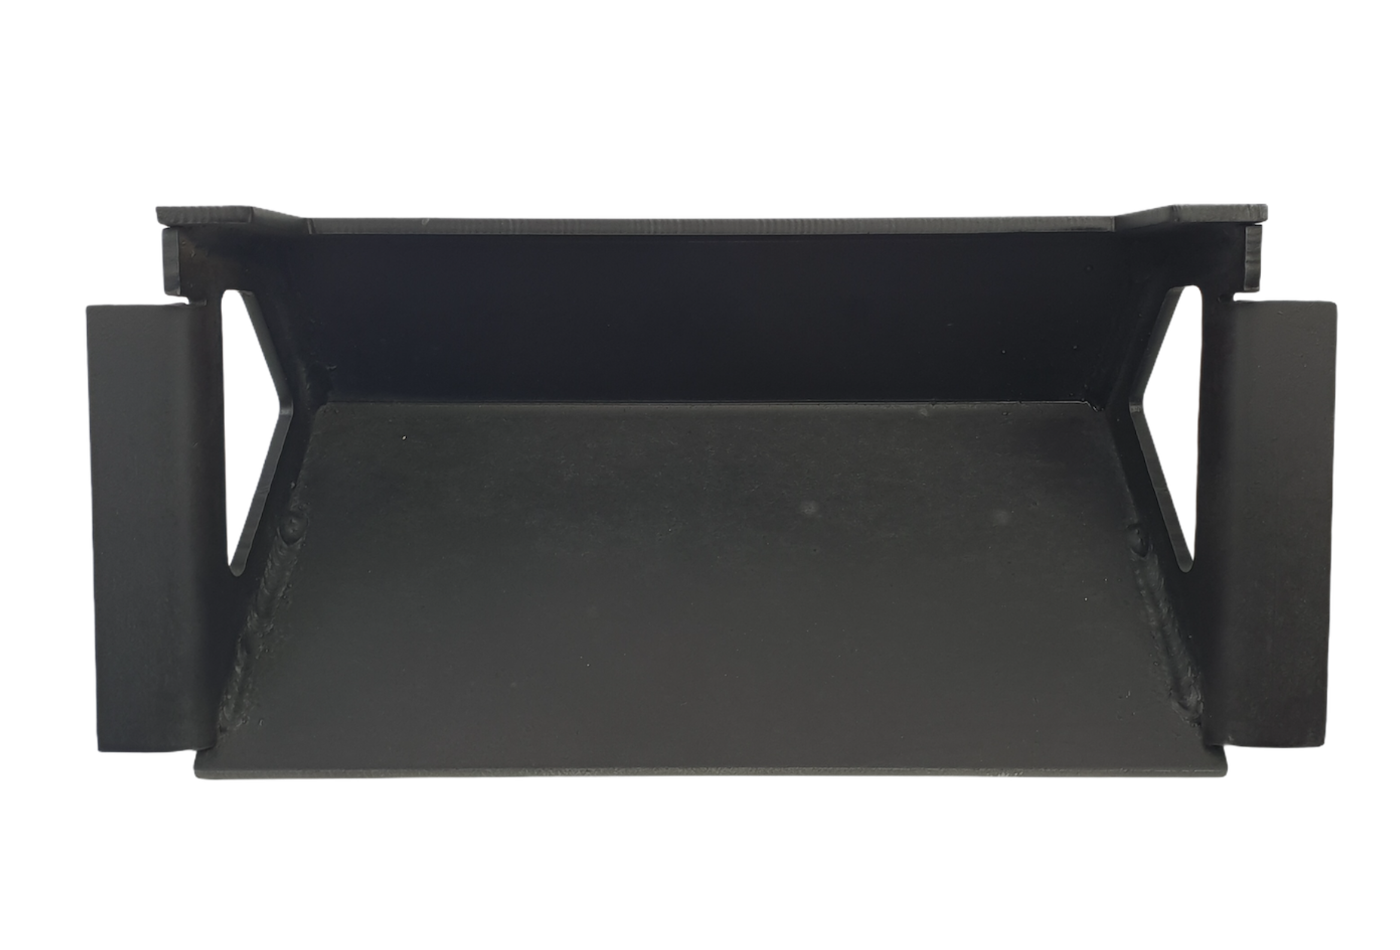 A baffle plate suitable for an Avalon Compact 5 stove.